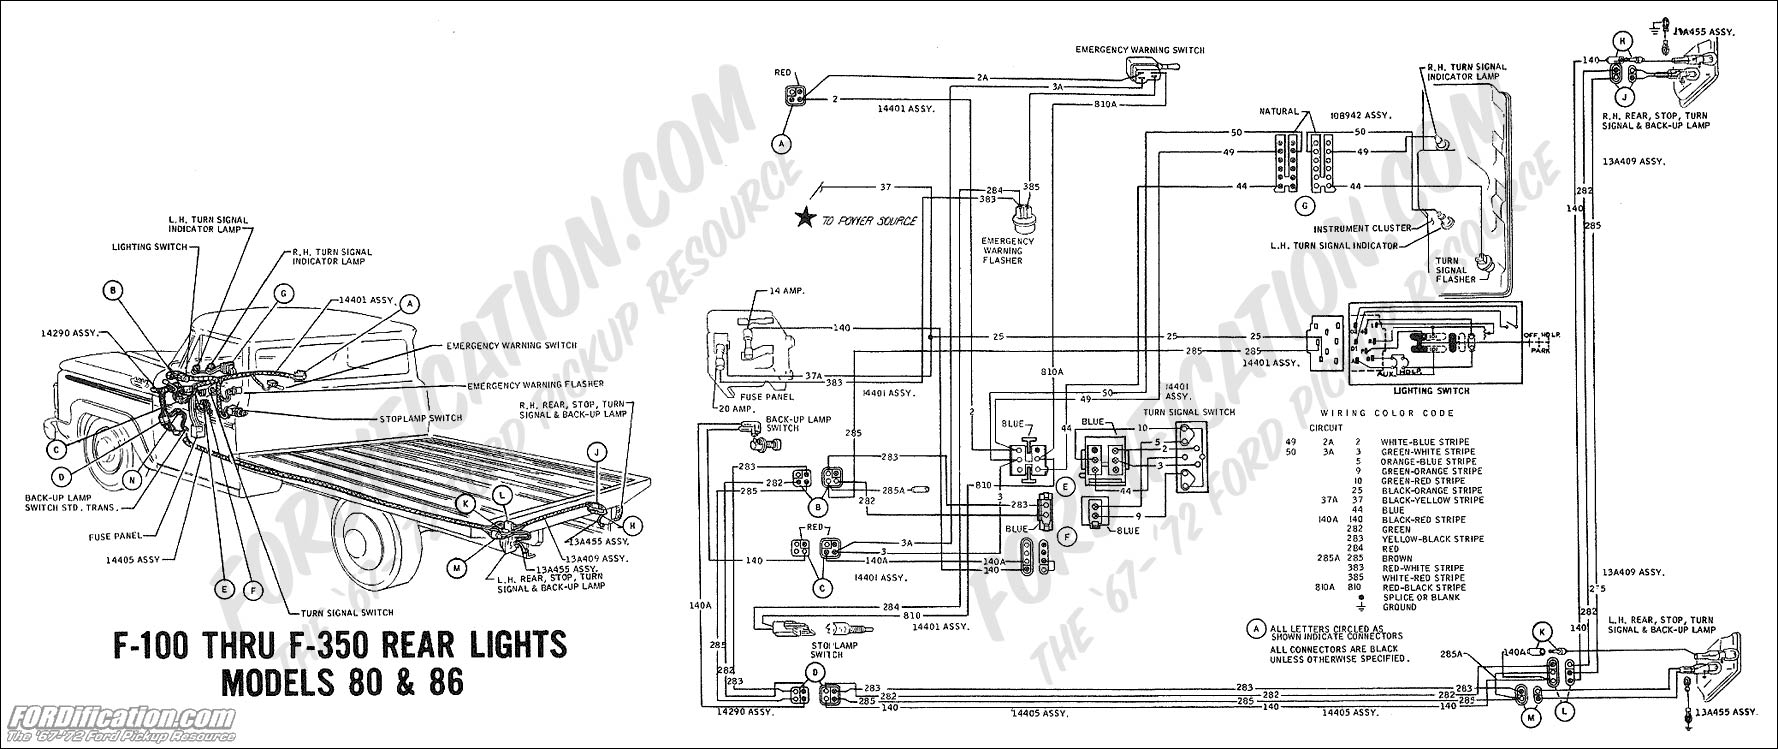 1979 f700 wiring diagram